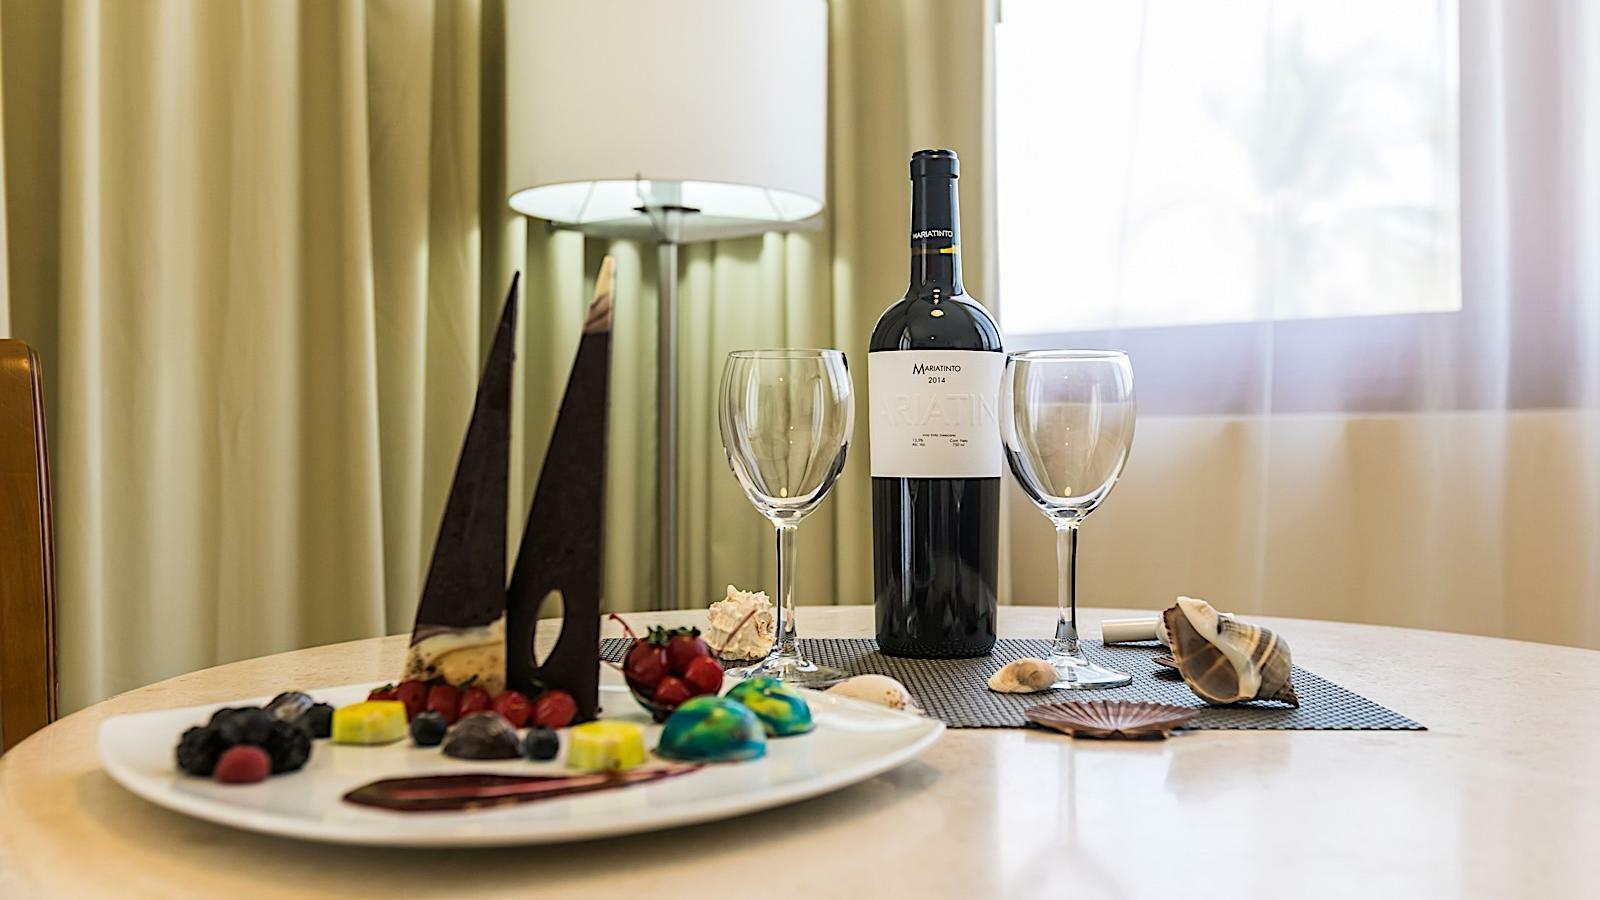 Fruit platter and wine given in Junior Suite King Ocean View Room at Pierre Mundo Imperial